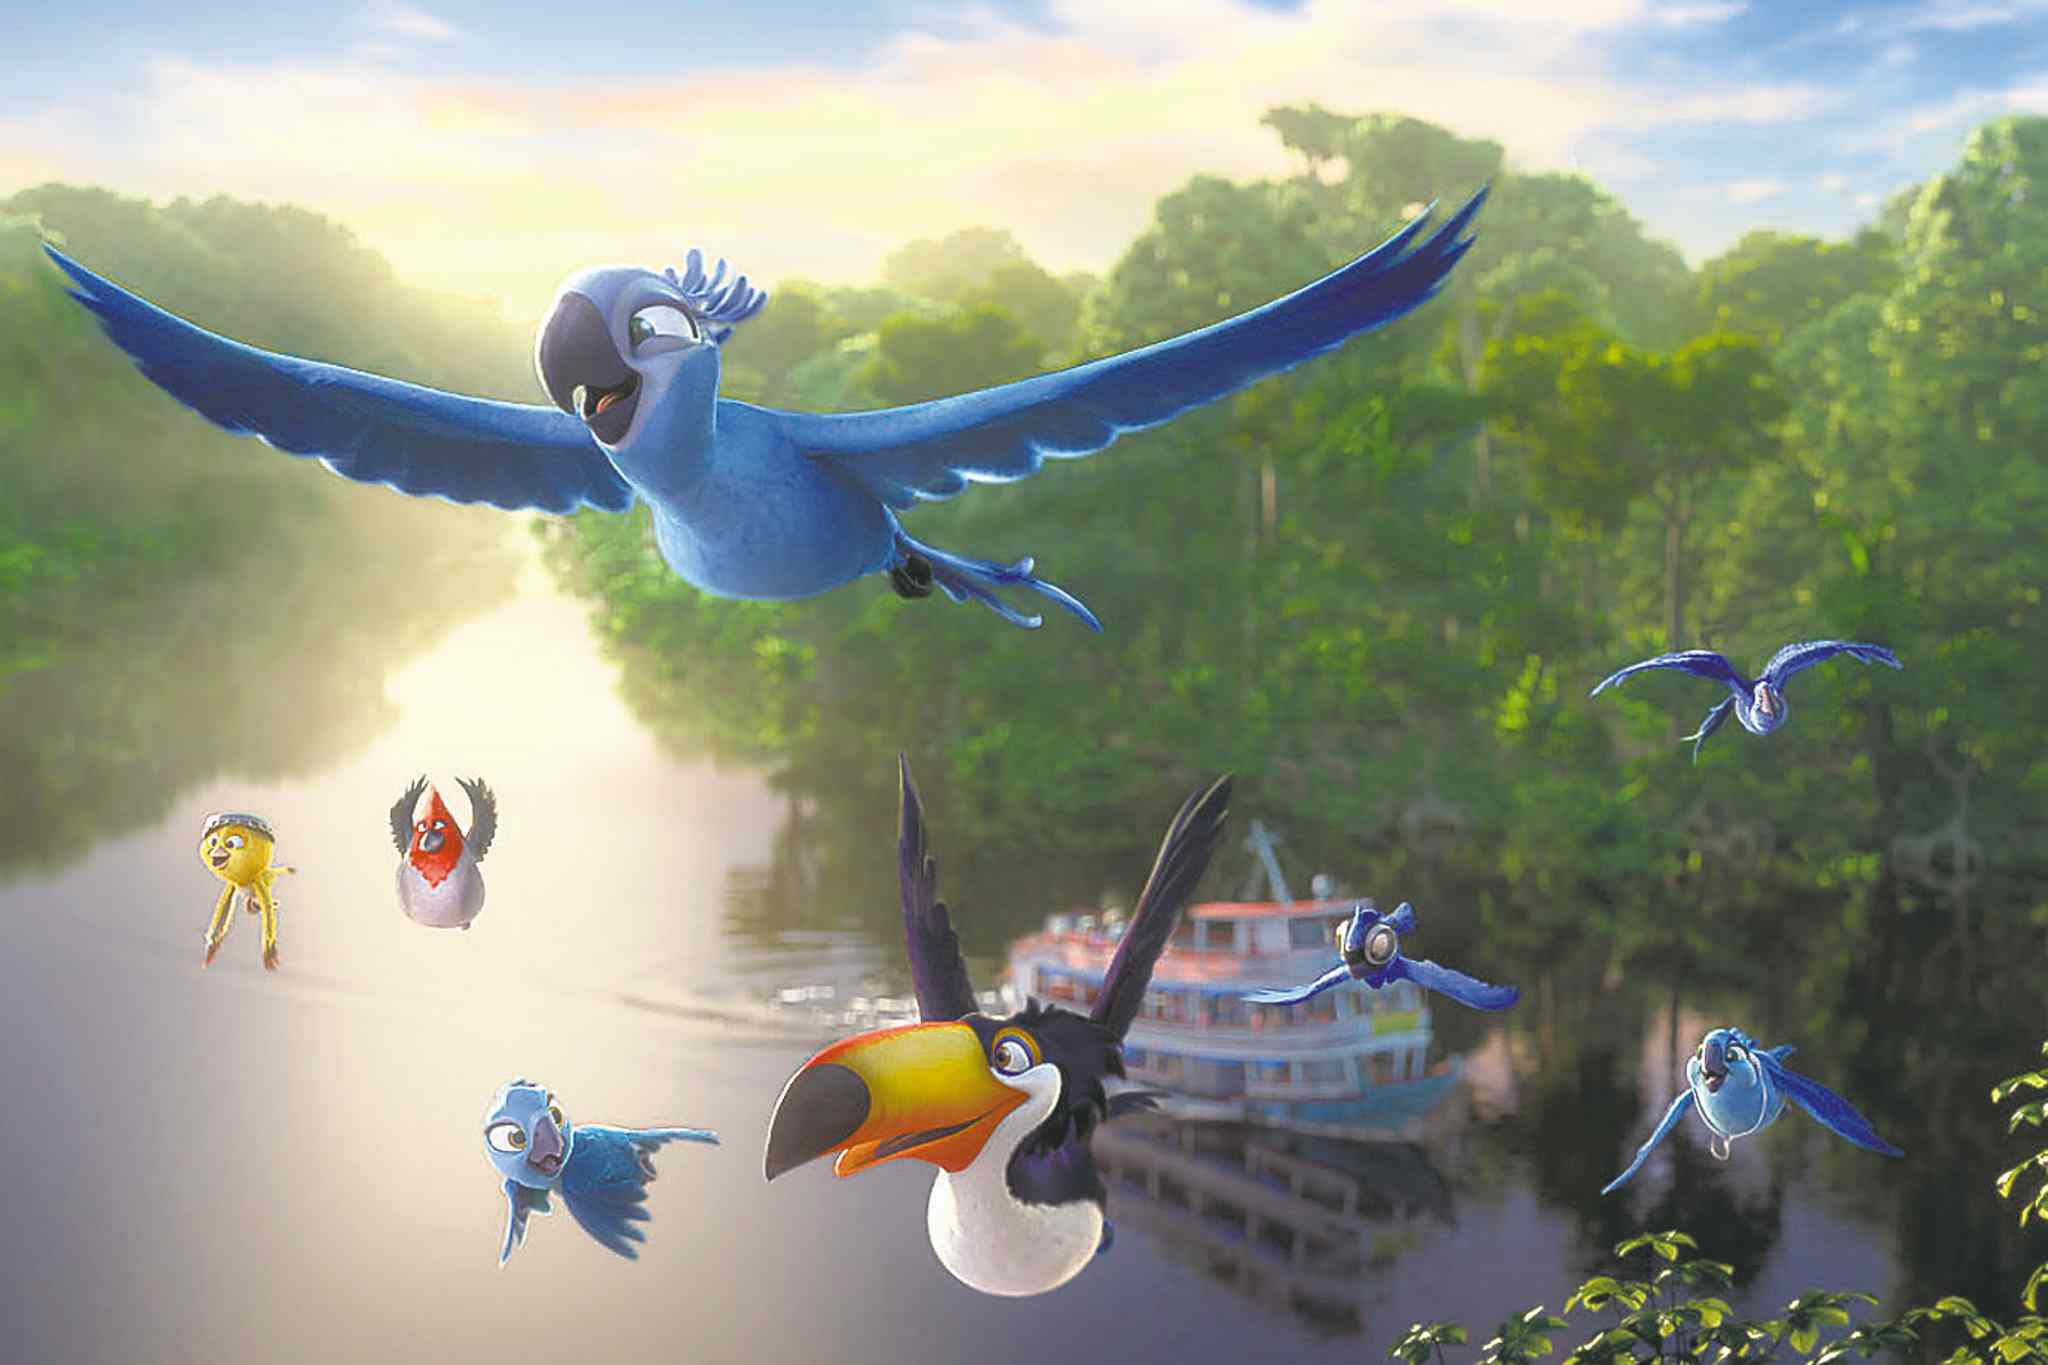 Rio 2 abandons the overall quality of the first film and tries to make up for it with kid-pandering humour.